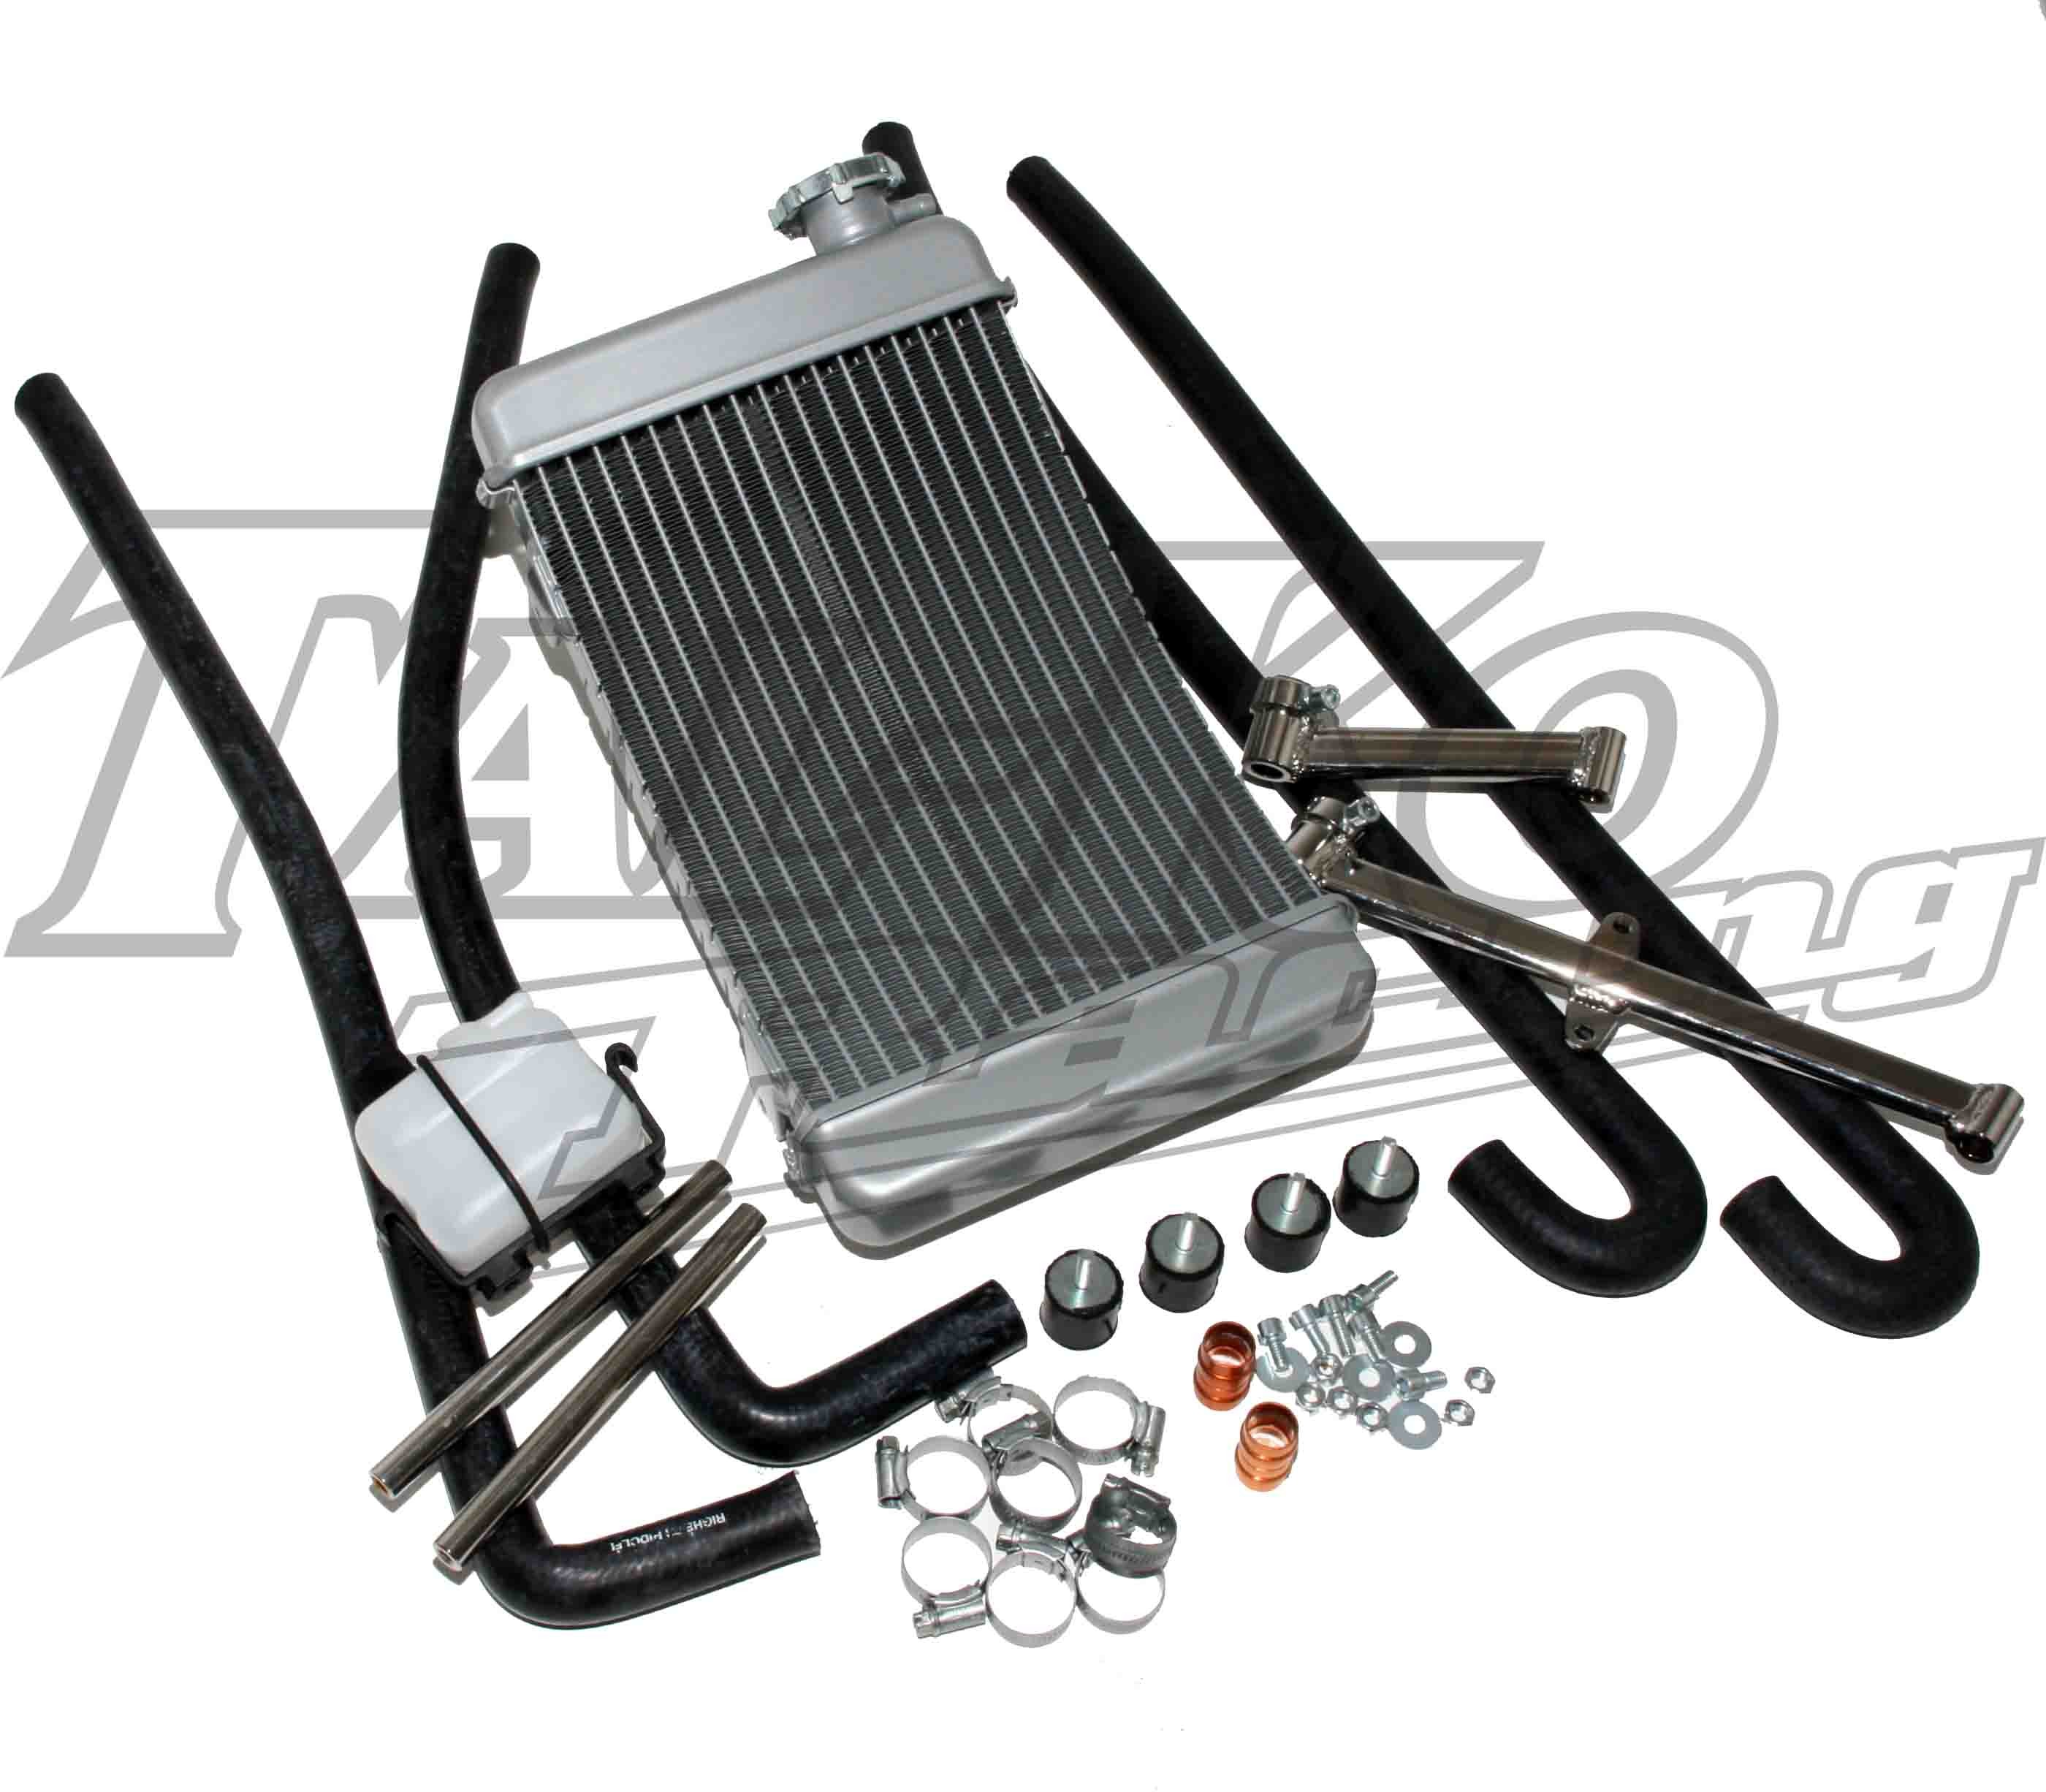 TKM K4S CURVED ENDURO RADIATOR KIT COMPLETE